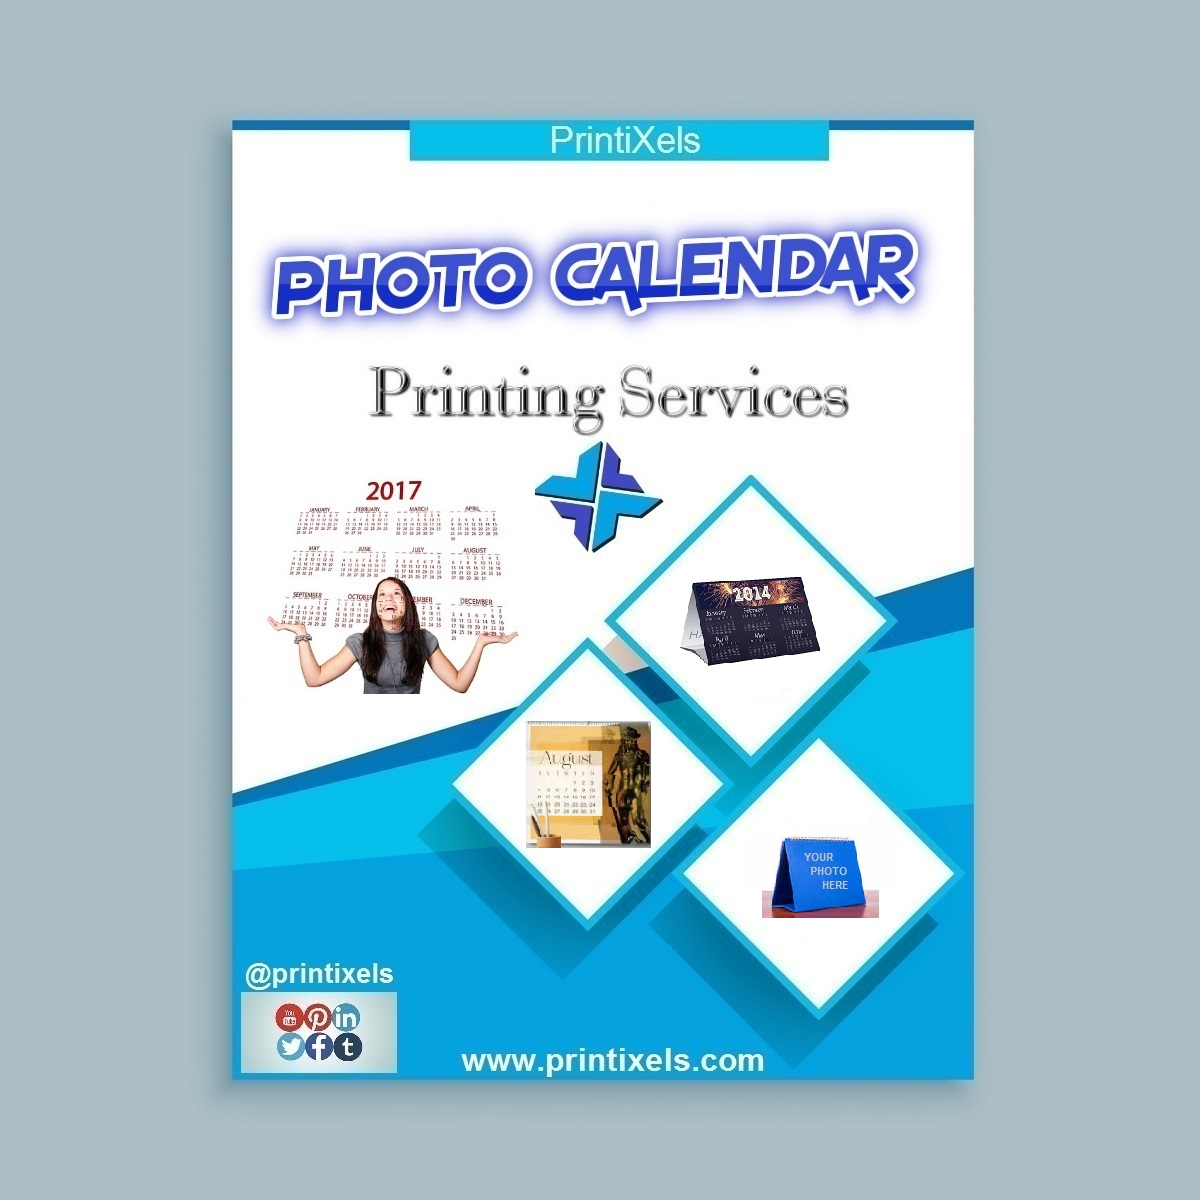 Photography Calendar Printing : Photo calendar printing services printixels™ philippines